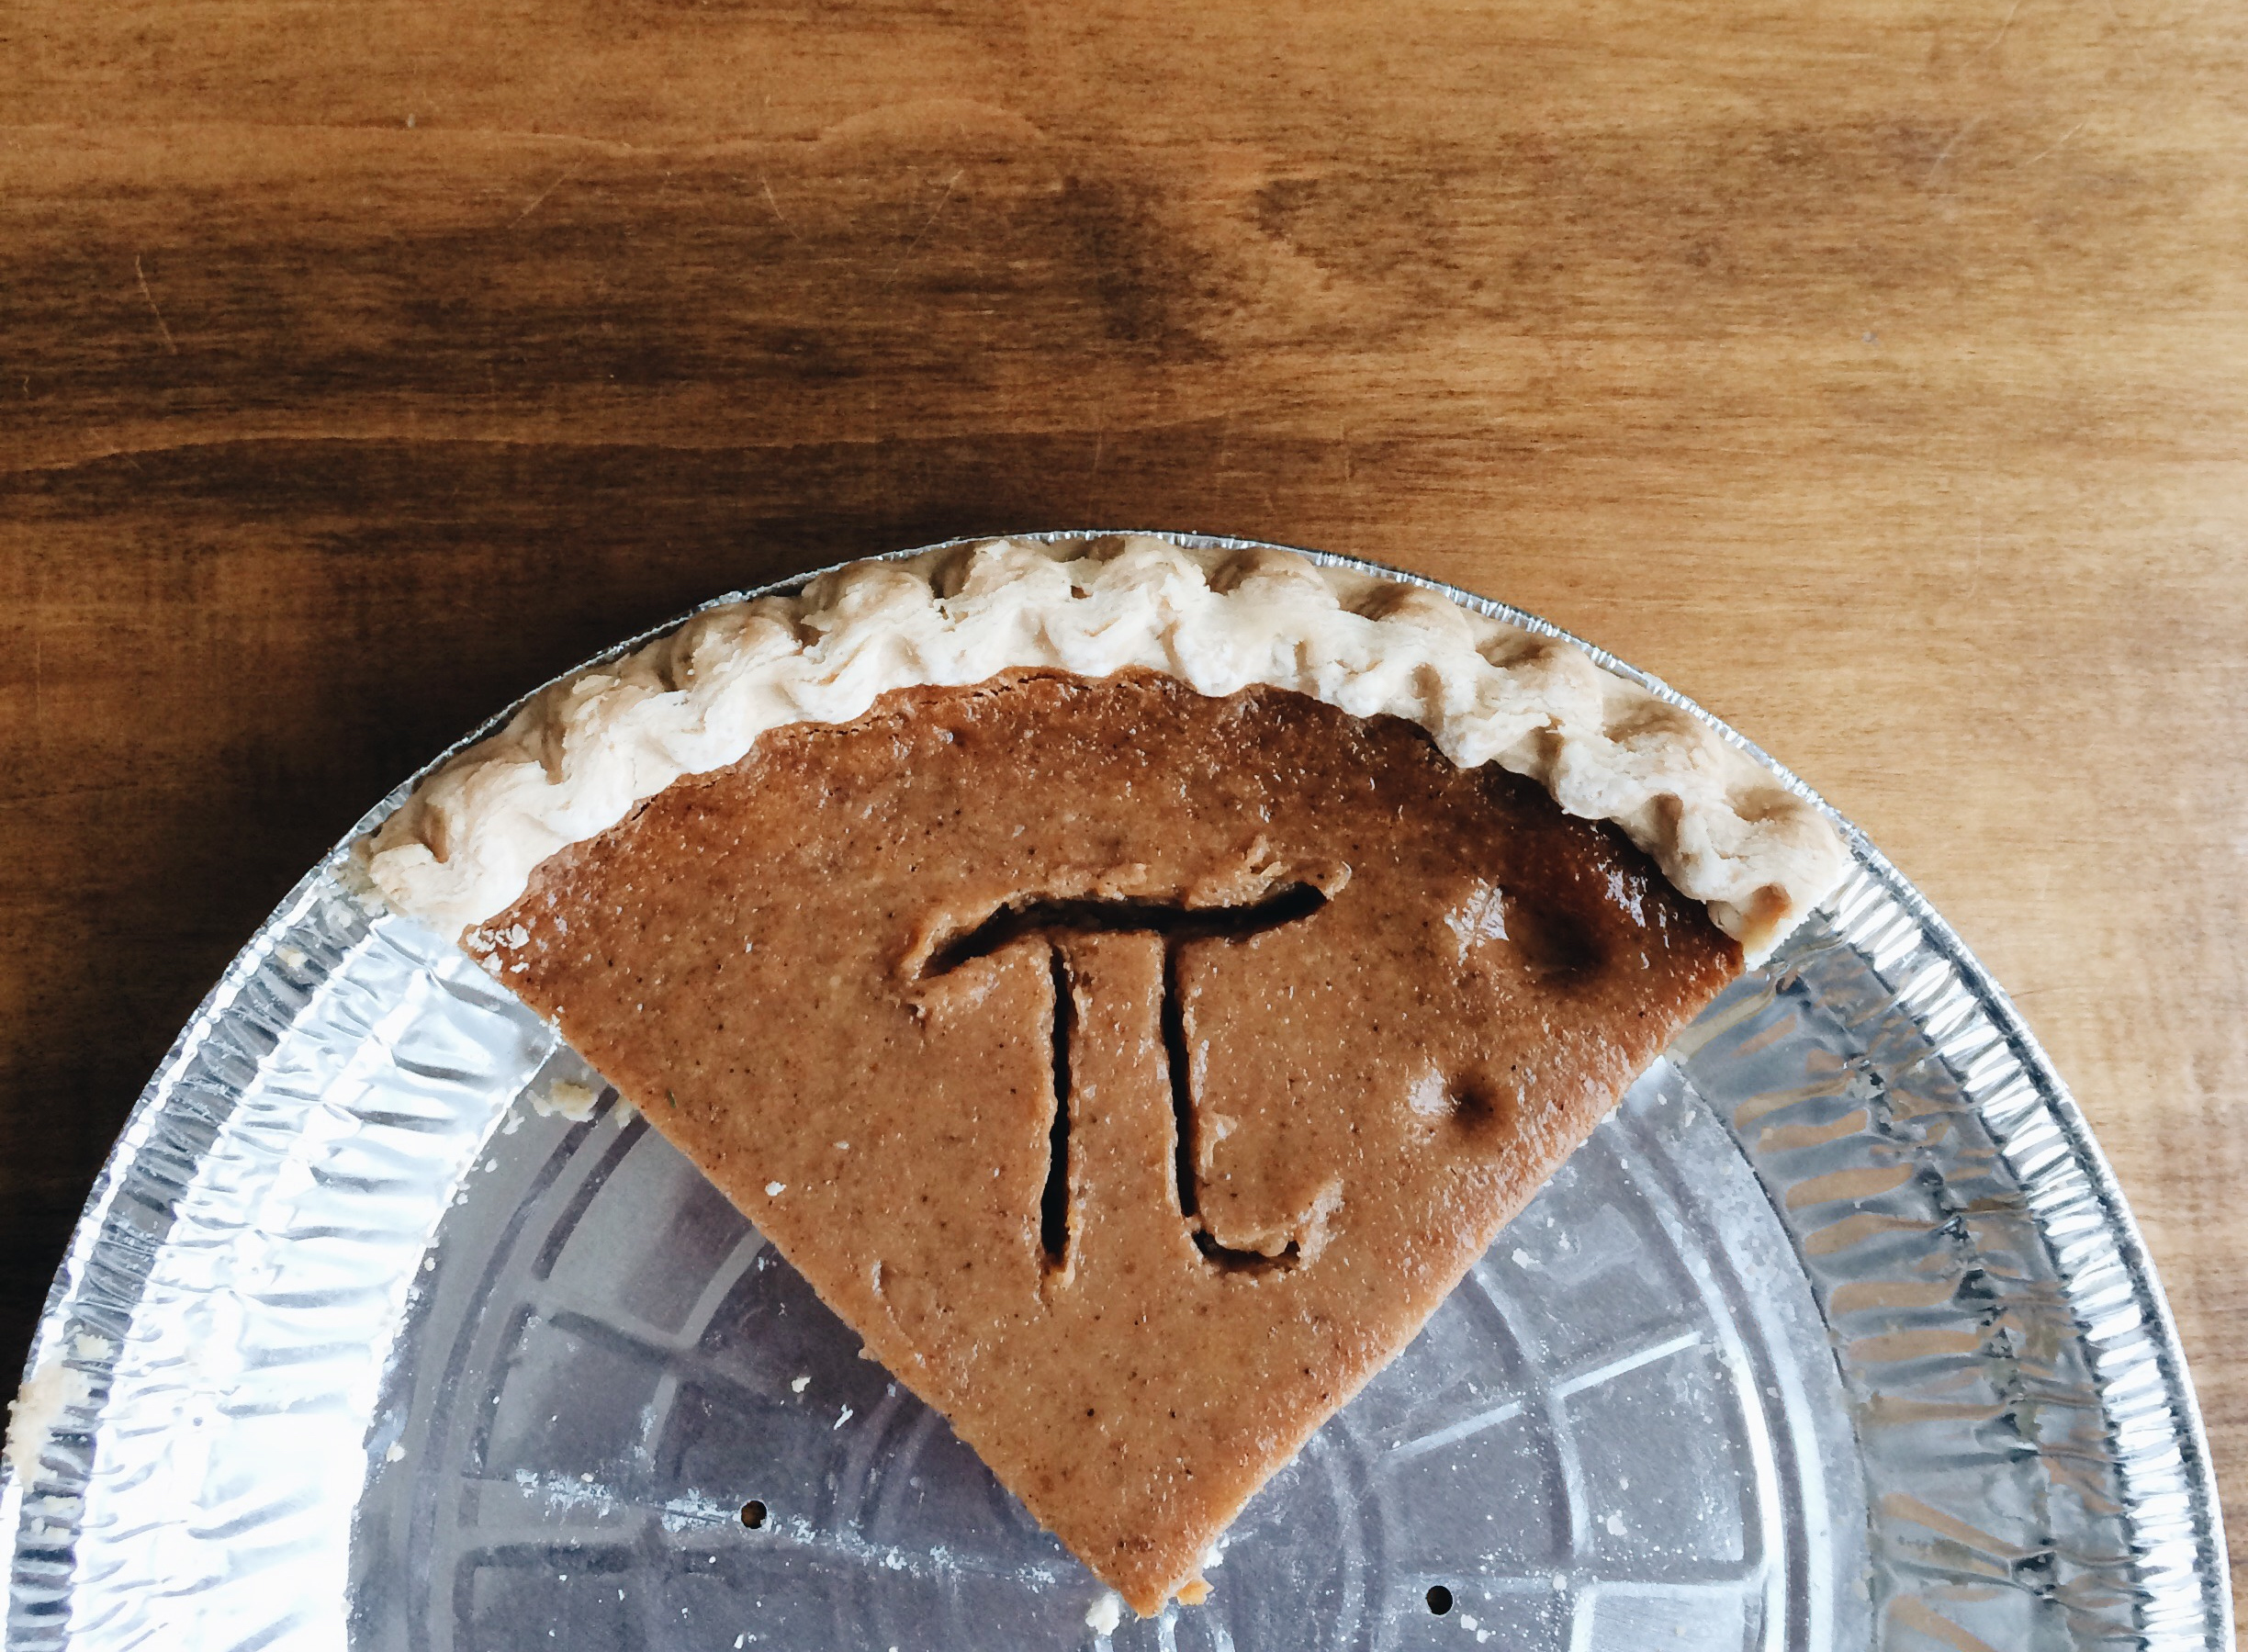 Pi Day Quotes Sayings: 17 Clever Pi Day Quotes, Instagram Captions, And Pi Puns